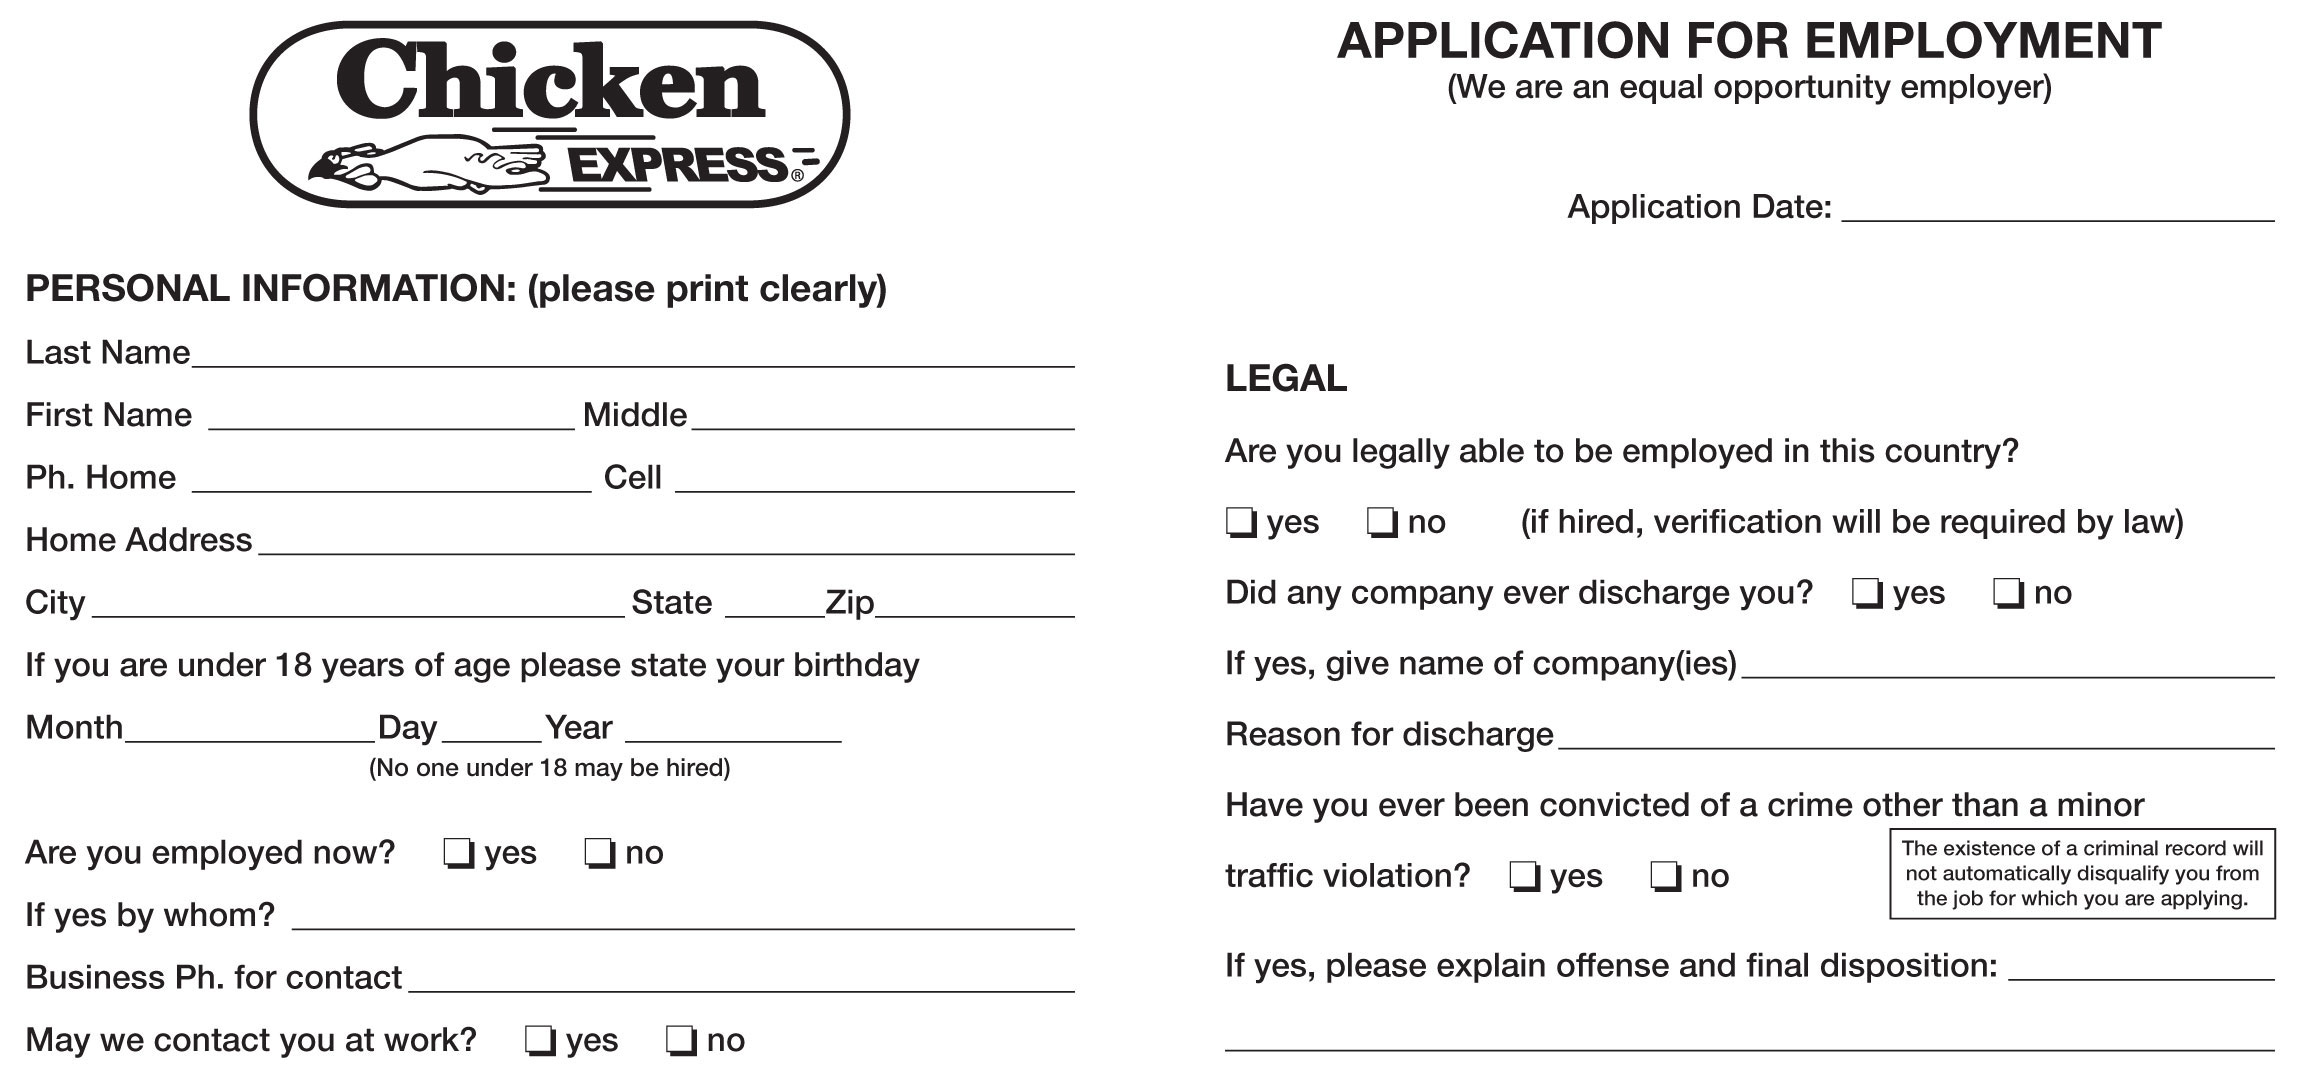 Free Printable Job Application Forms Search Apply Online Chicken Express Job Application Printable Job Employment